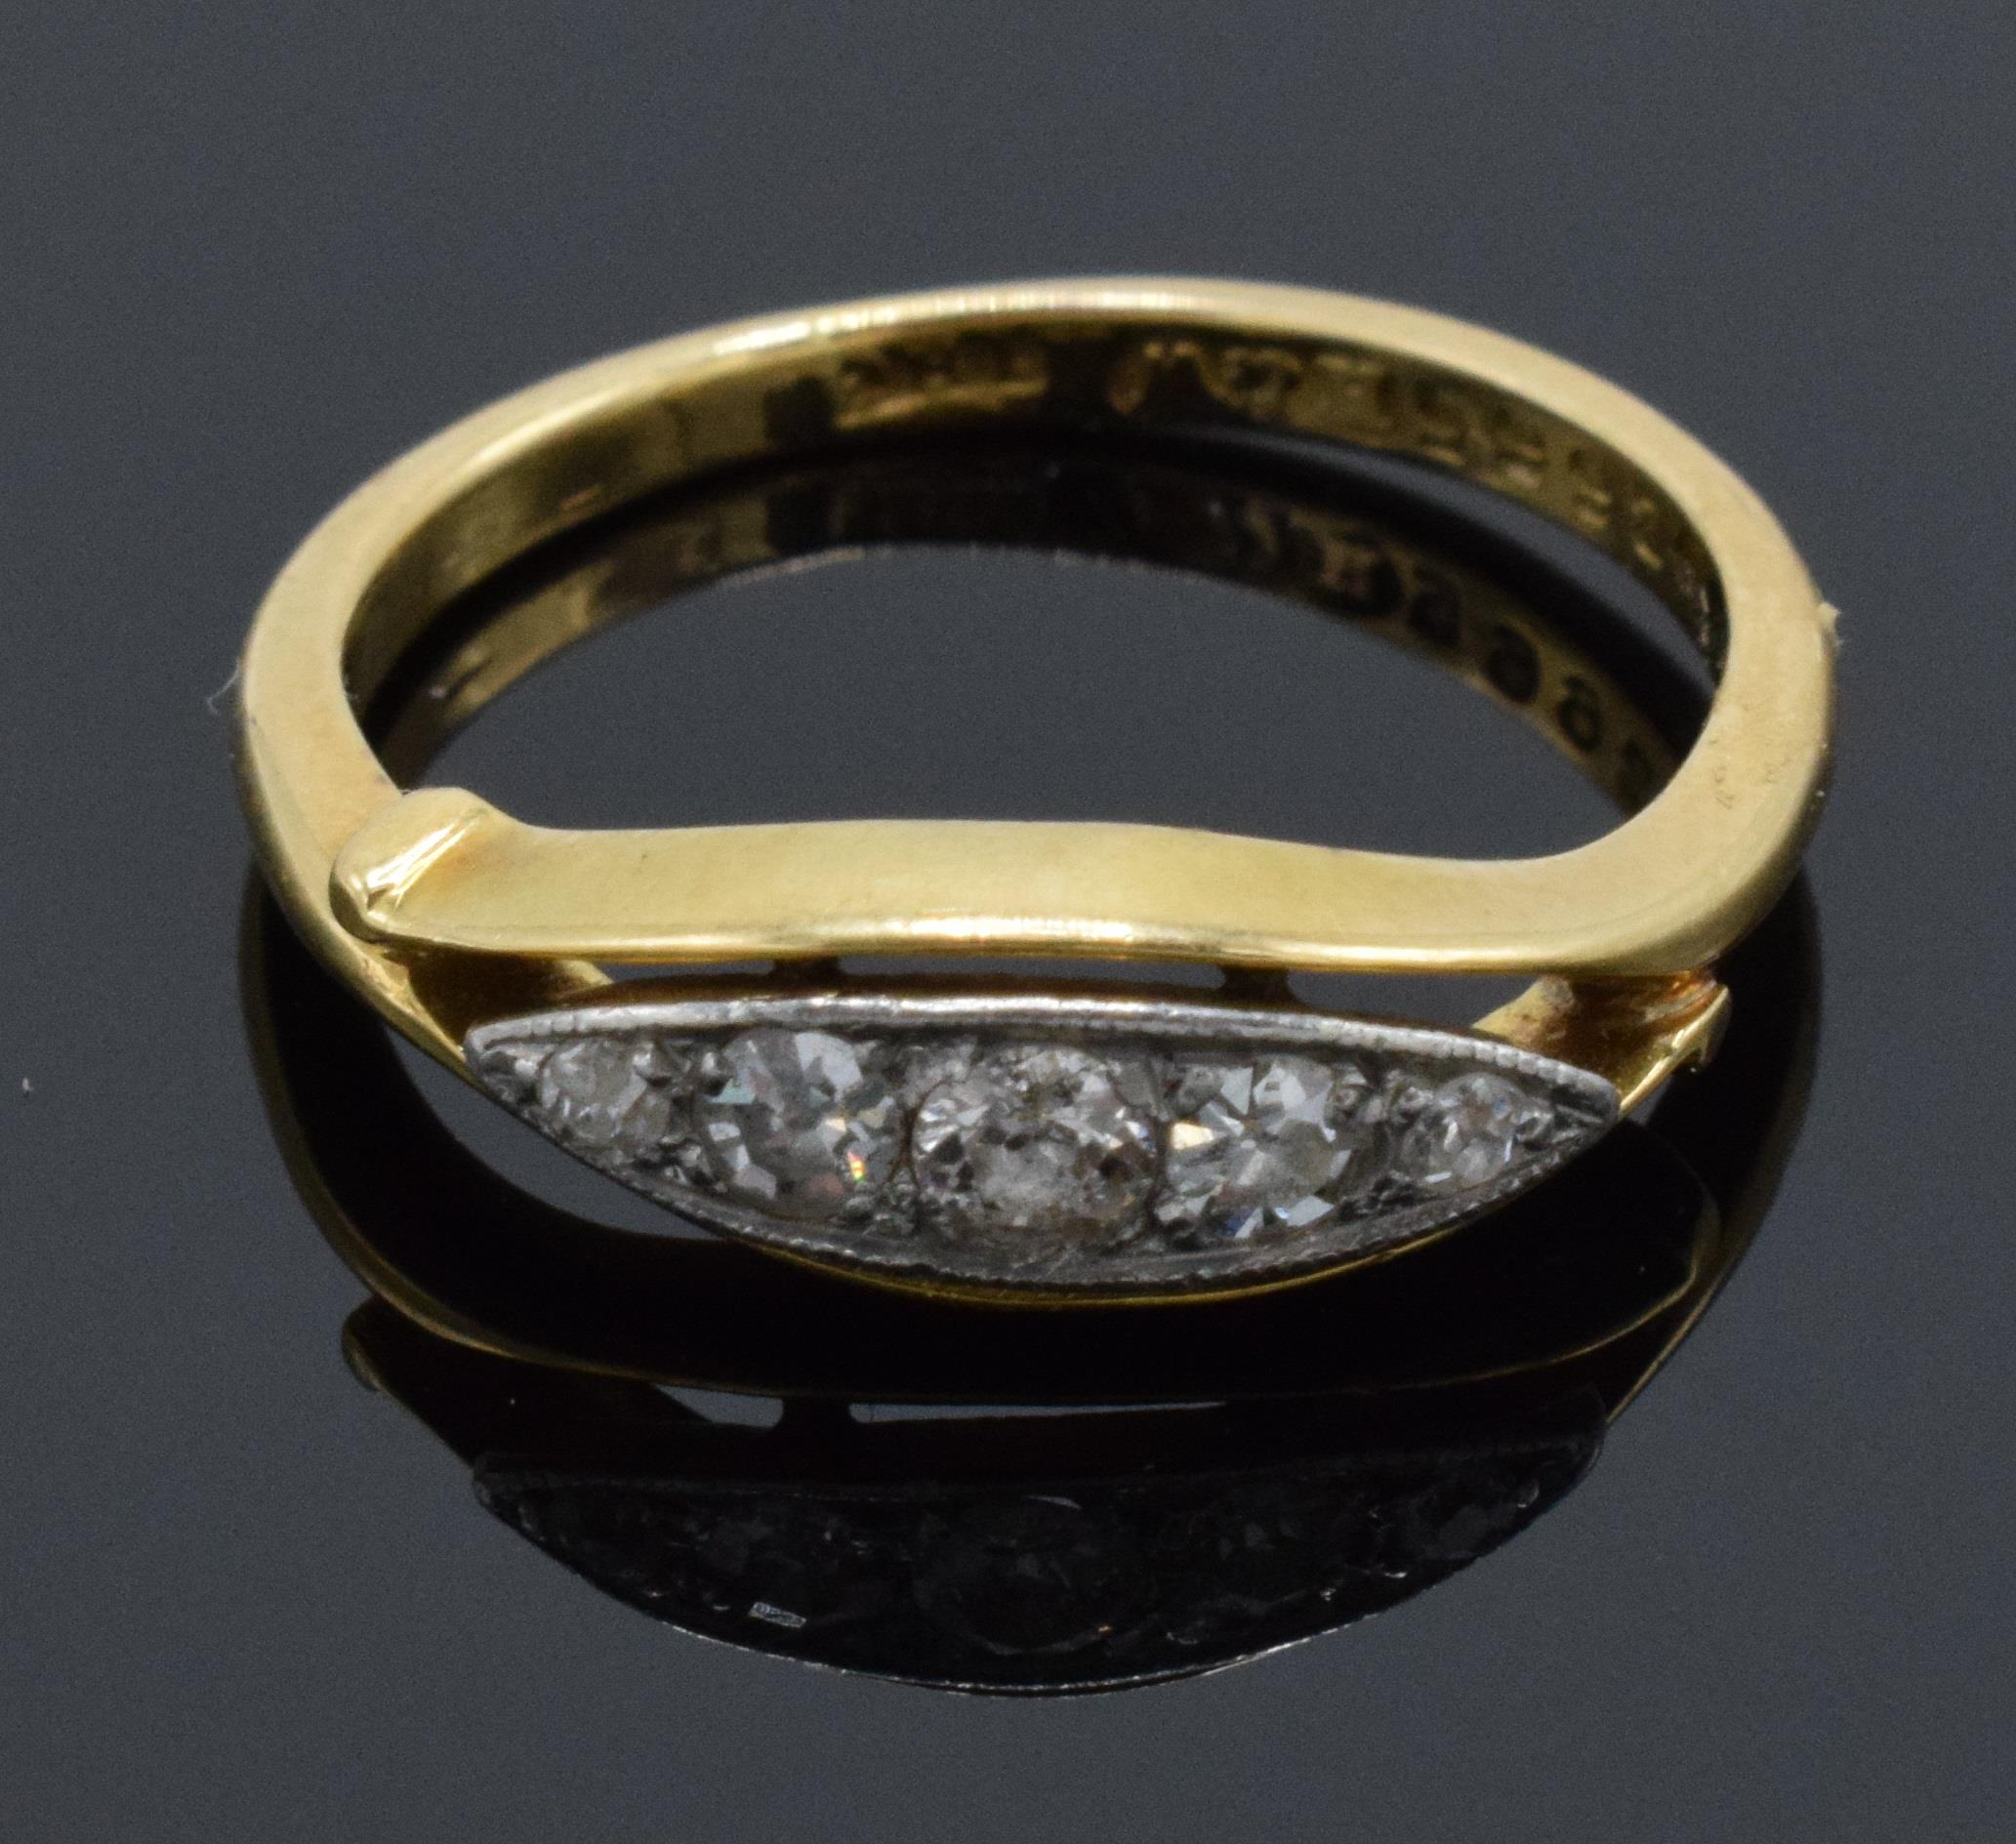 18ct gold ring set with 5 diamonds. UK size K/L. 2.7 grams. In good condition.